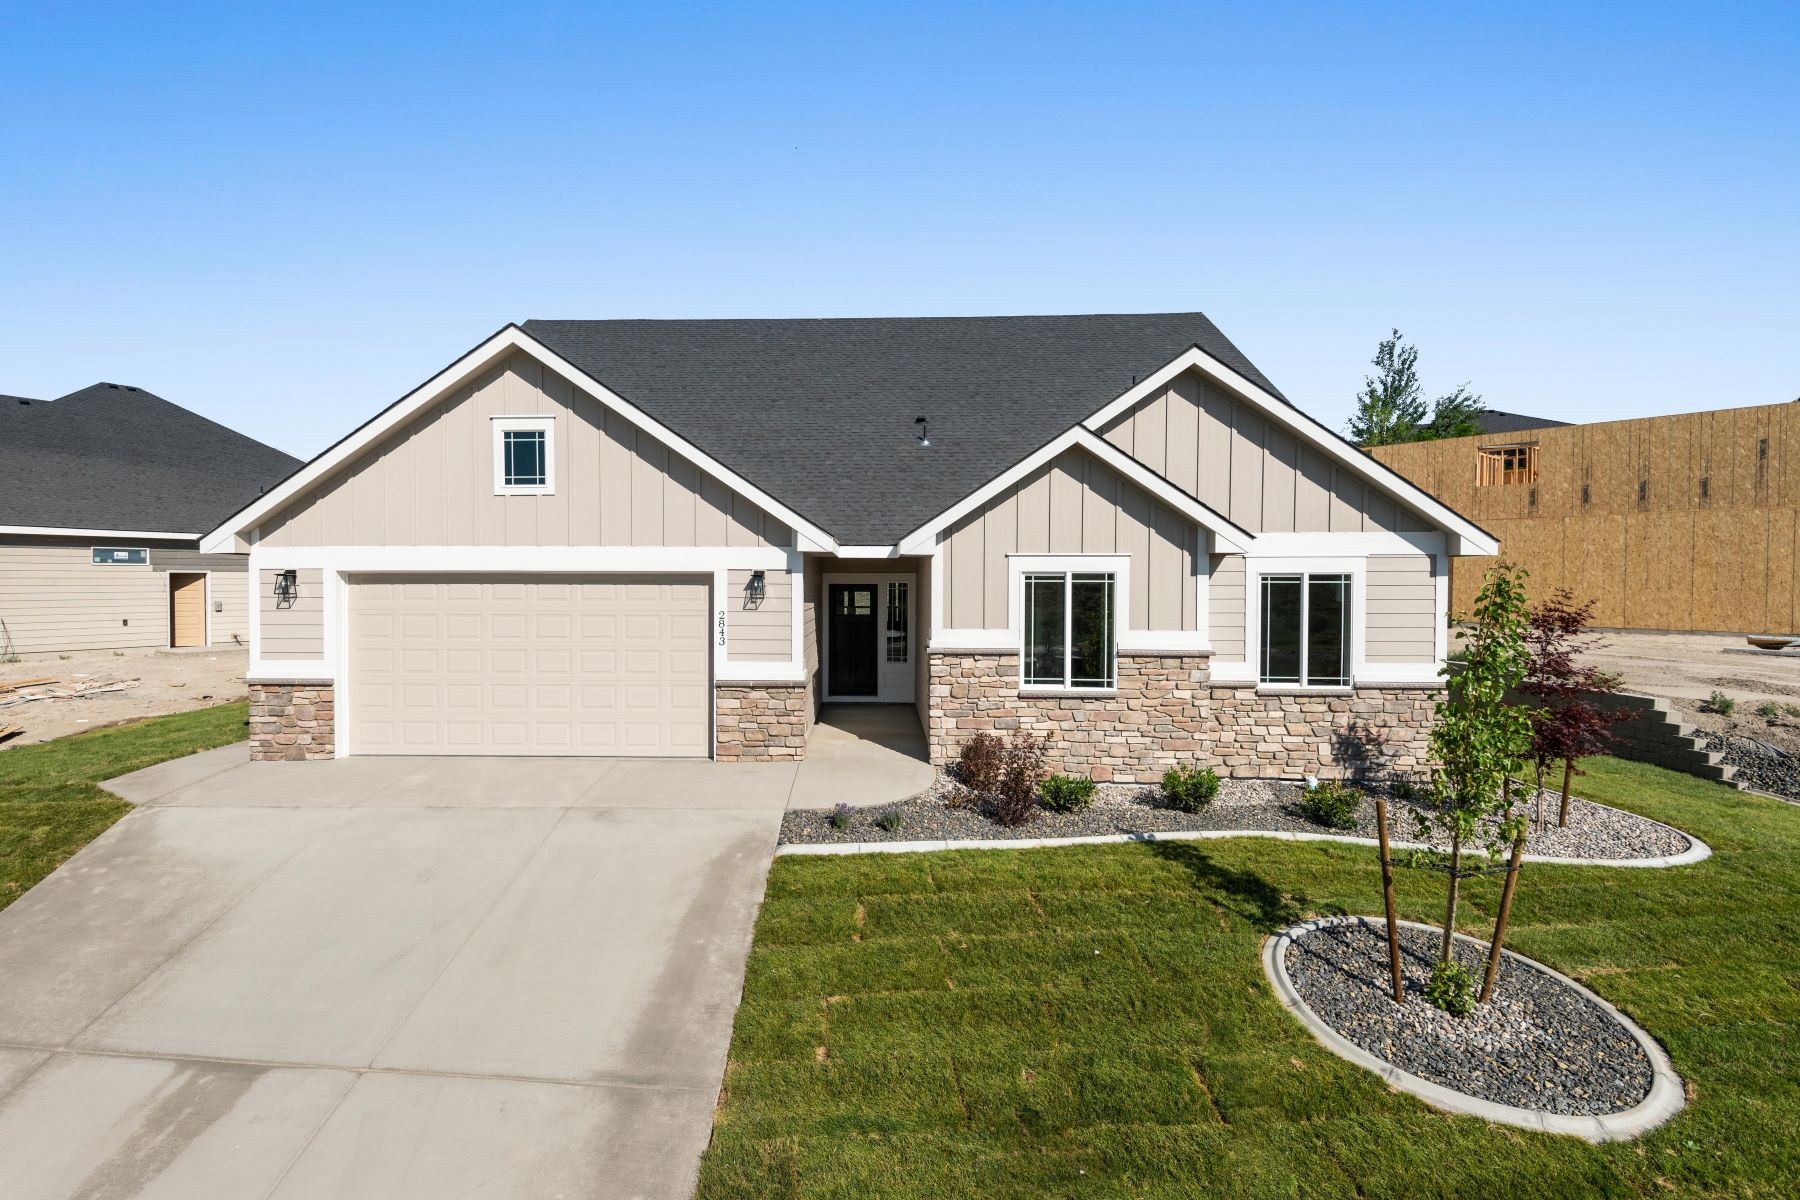 Single Family Homes for Sale at The Dover Floorplan 2843 Mackenzie Richland, Washington 99352 United States